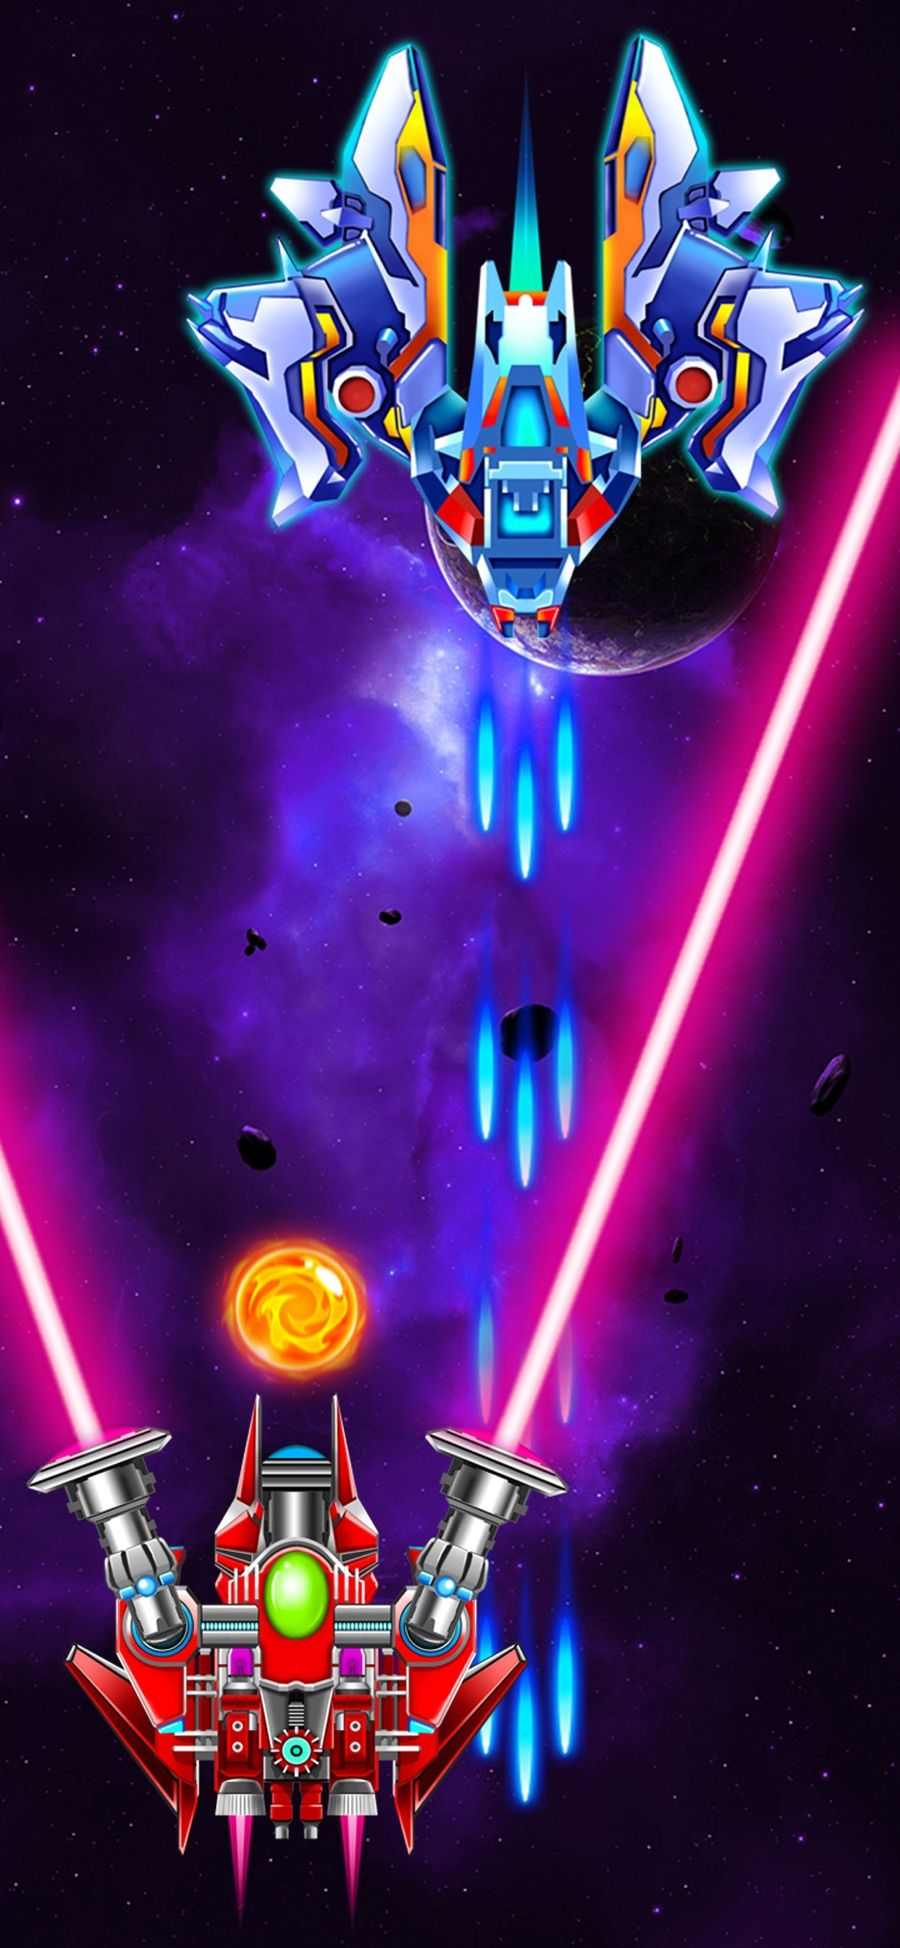 Galaxy Attack Alien Shooter on the App Store Shooters